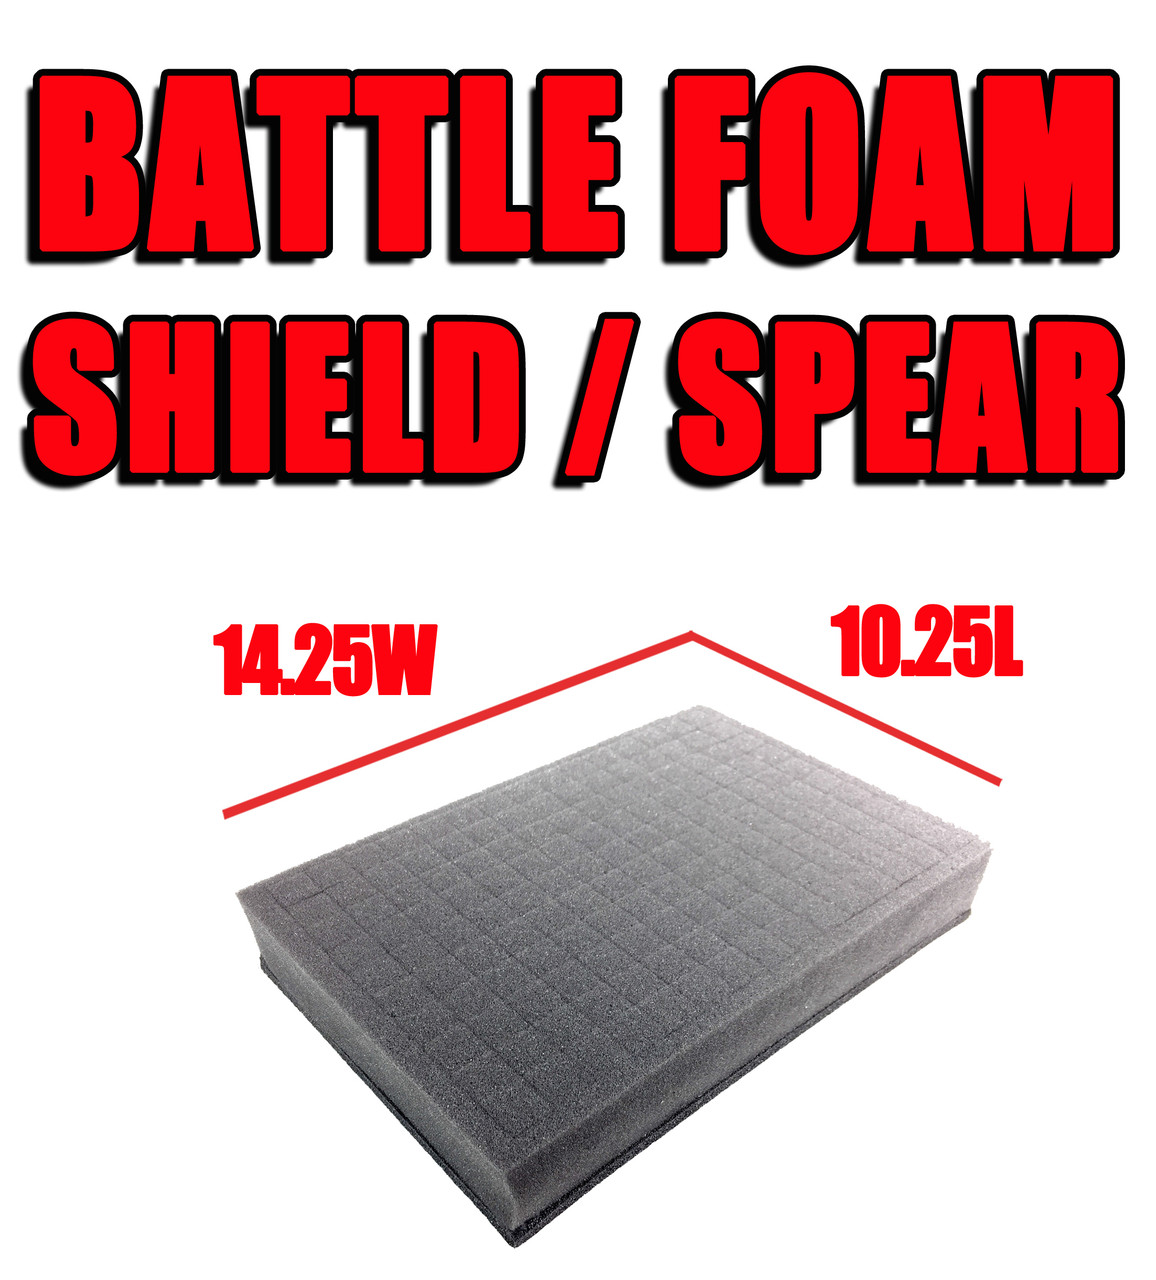 Shield/Spear Foam Trays (14.25W x 10.25L)